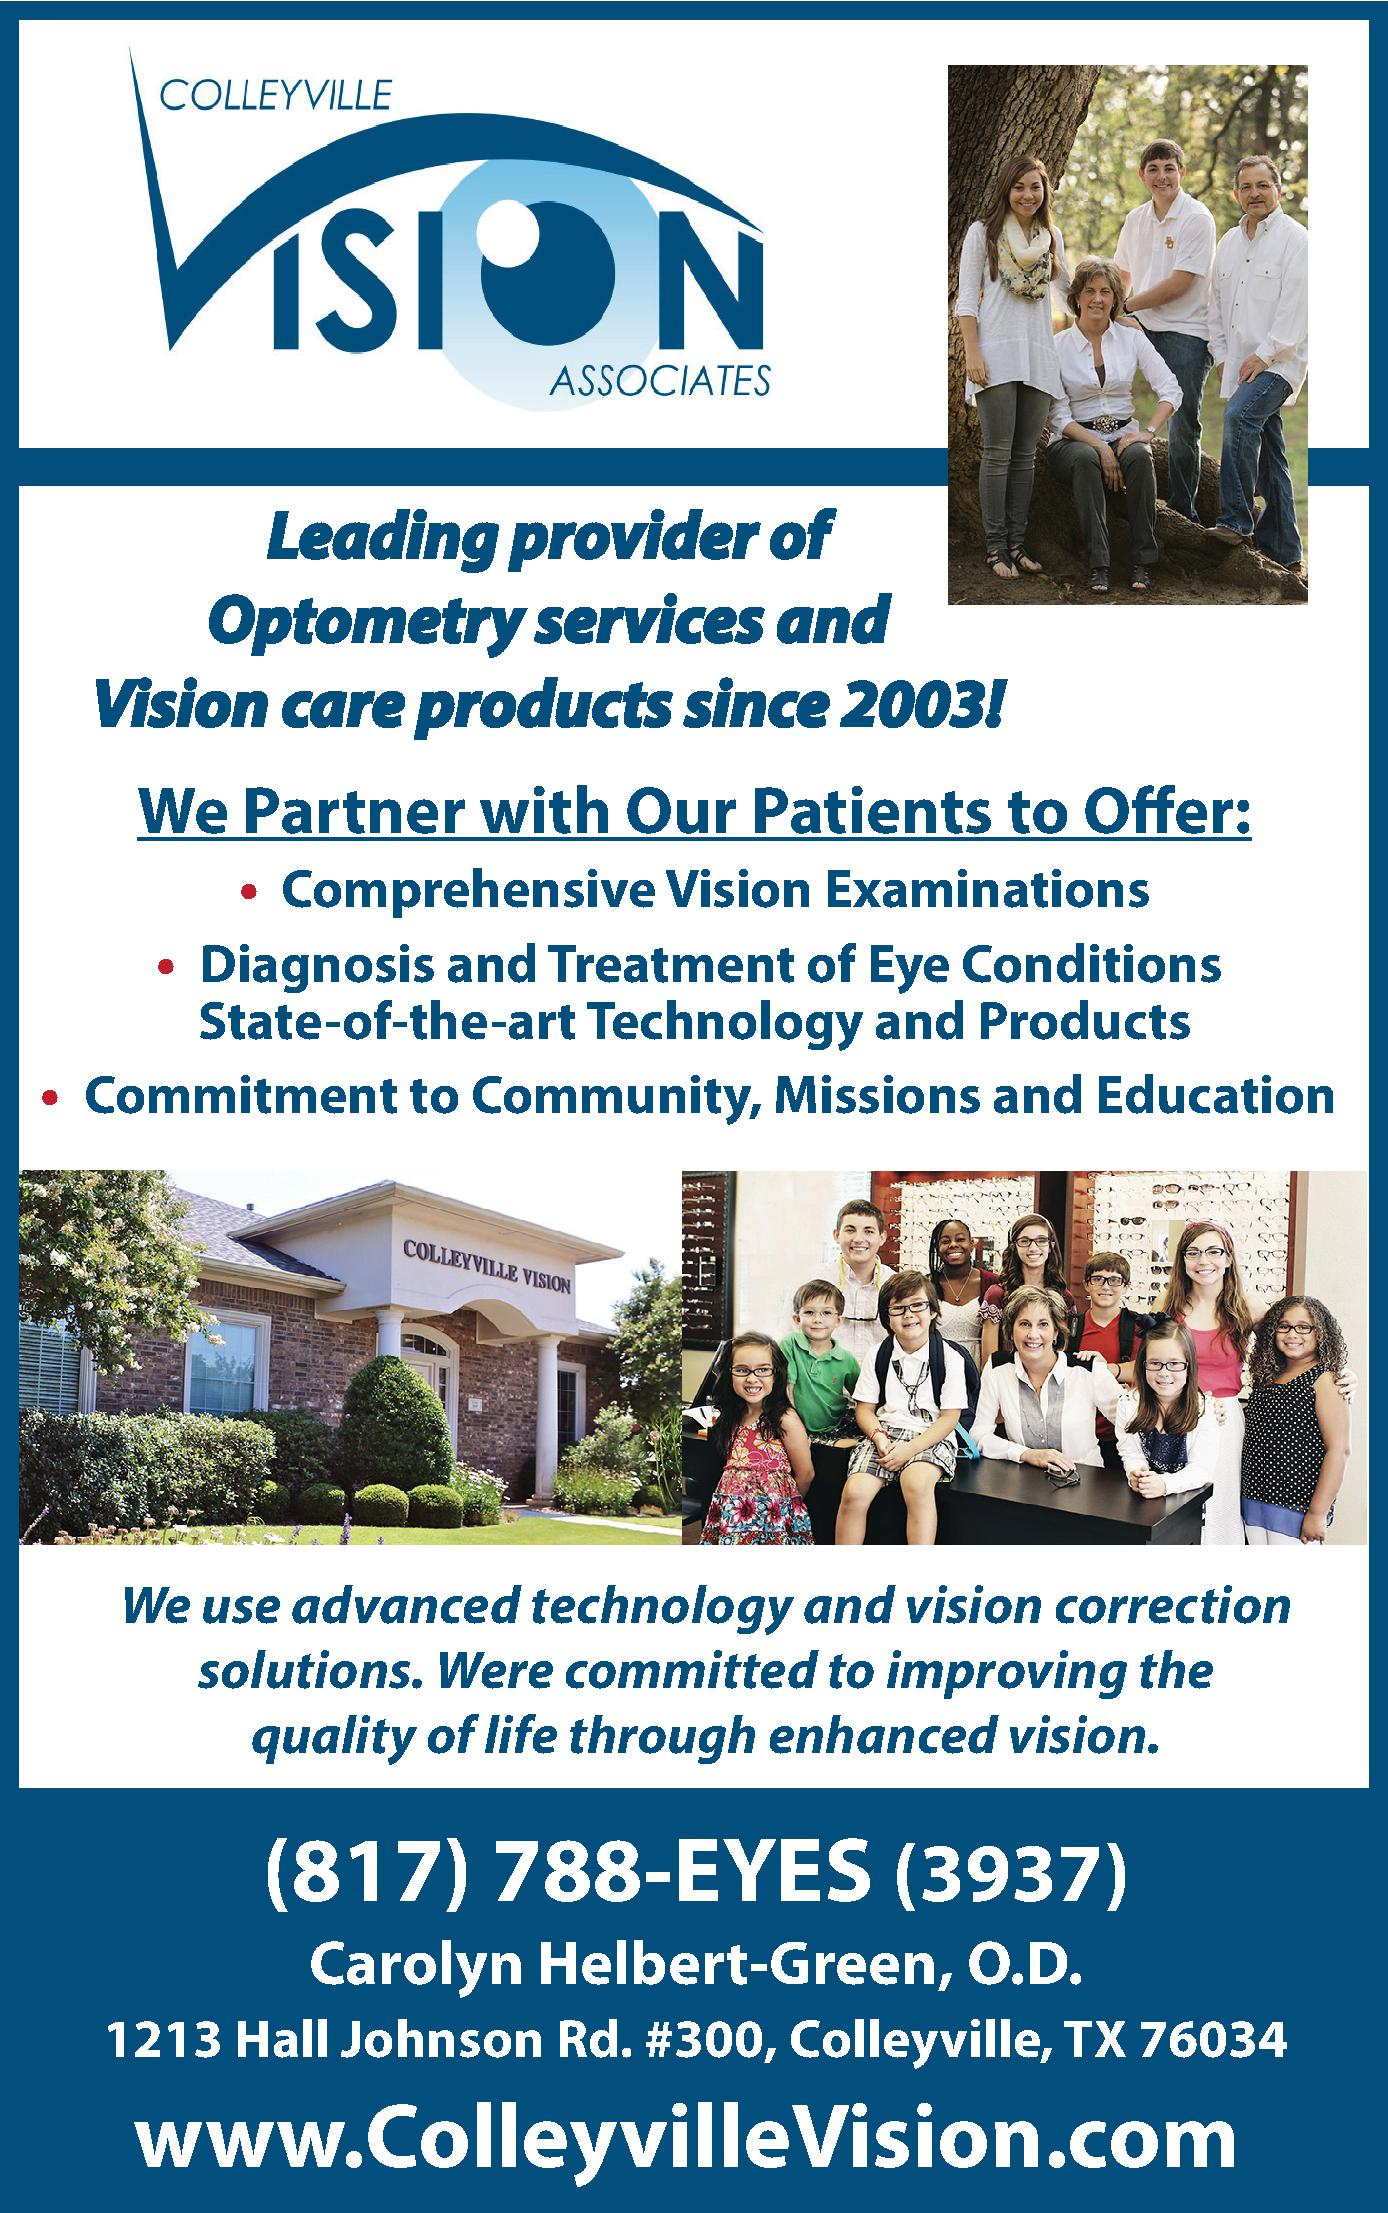 Colleyville Vision Associates